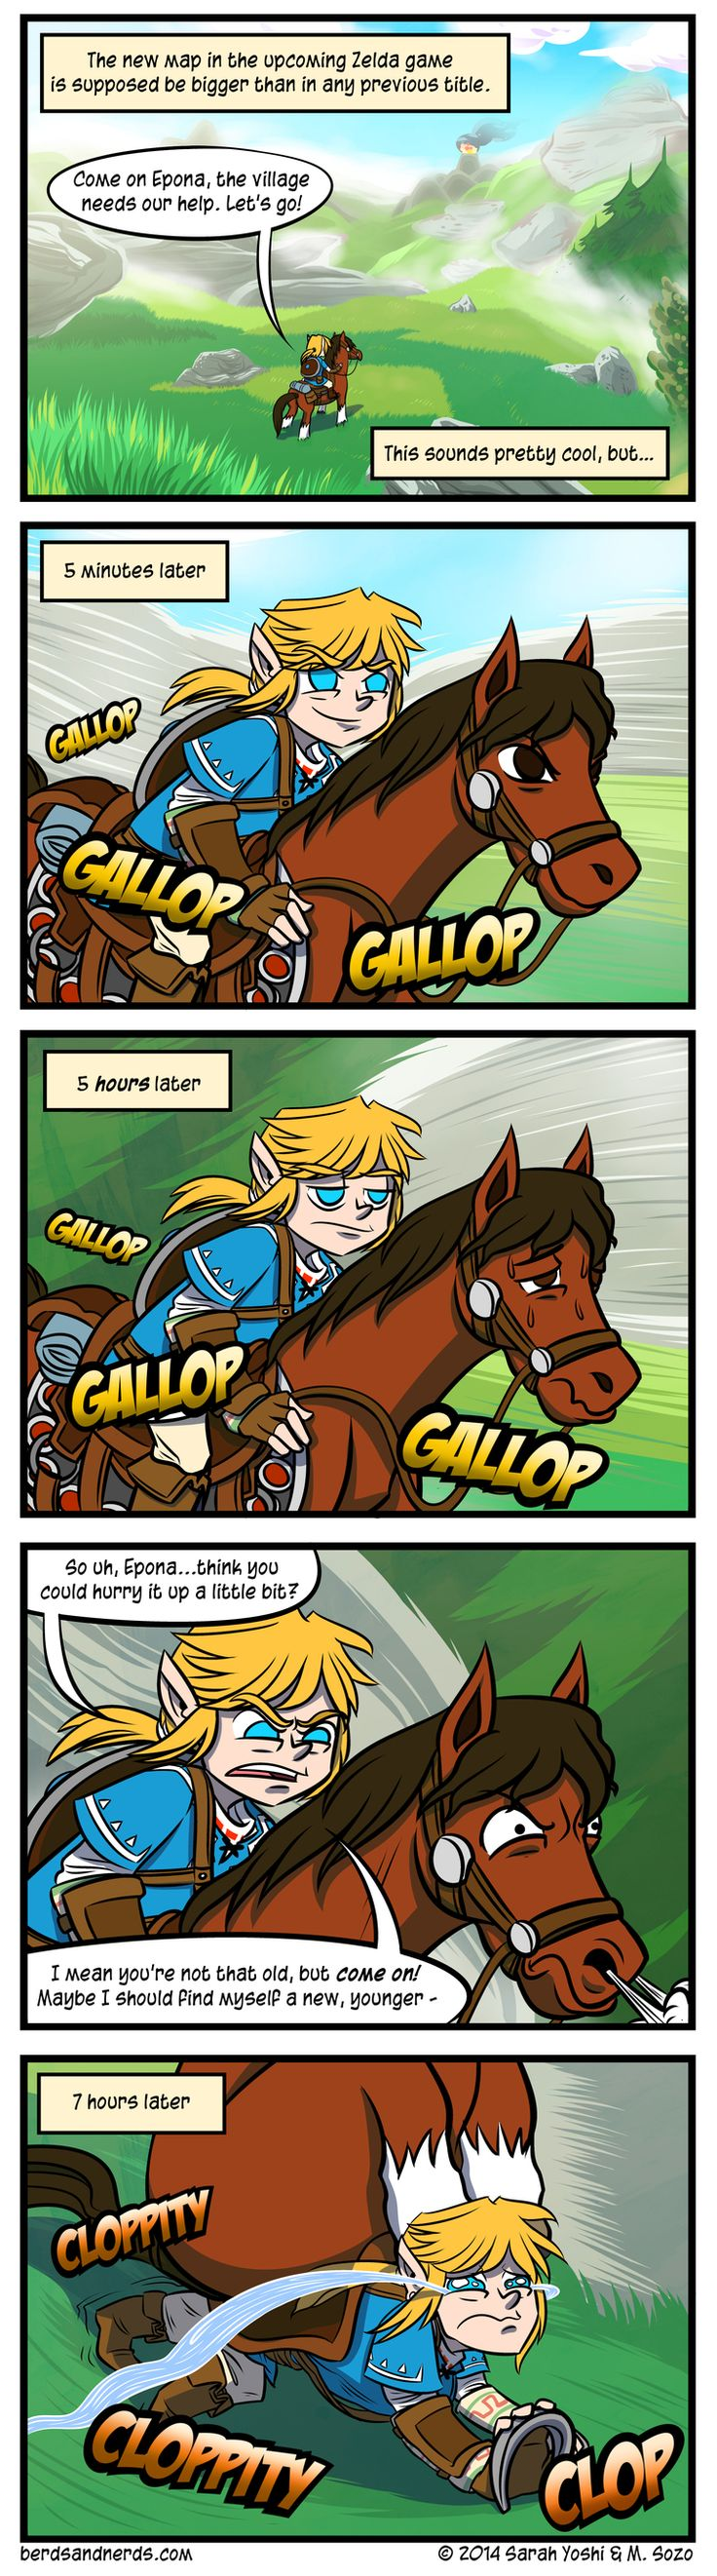 Horse Power | #Zelda #WiiU #2015 Please not a total repeat of WW sailing. My poor heart couldn't take it.